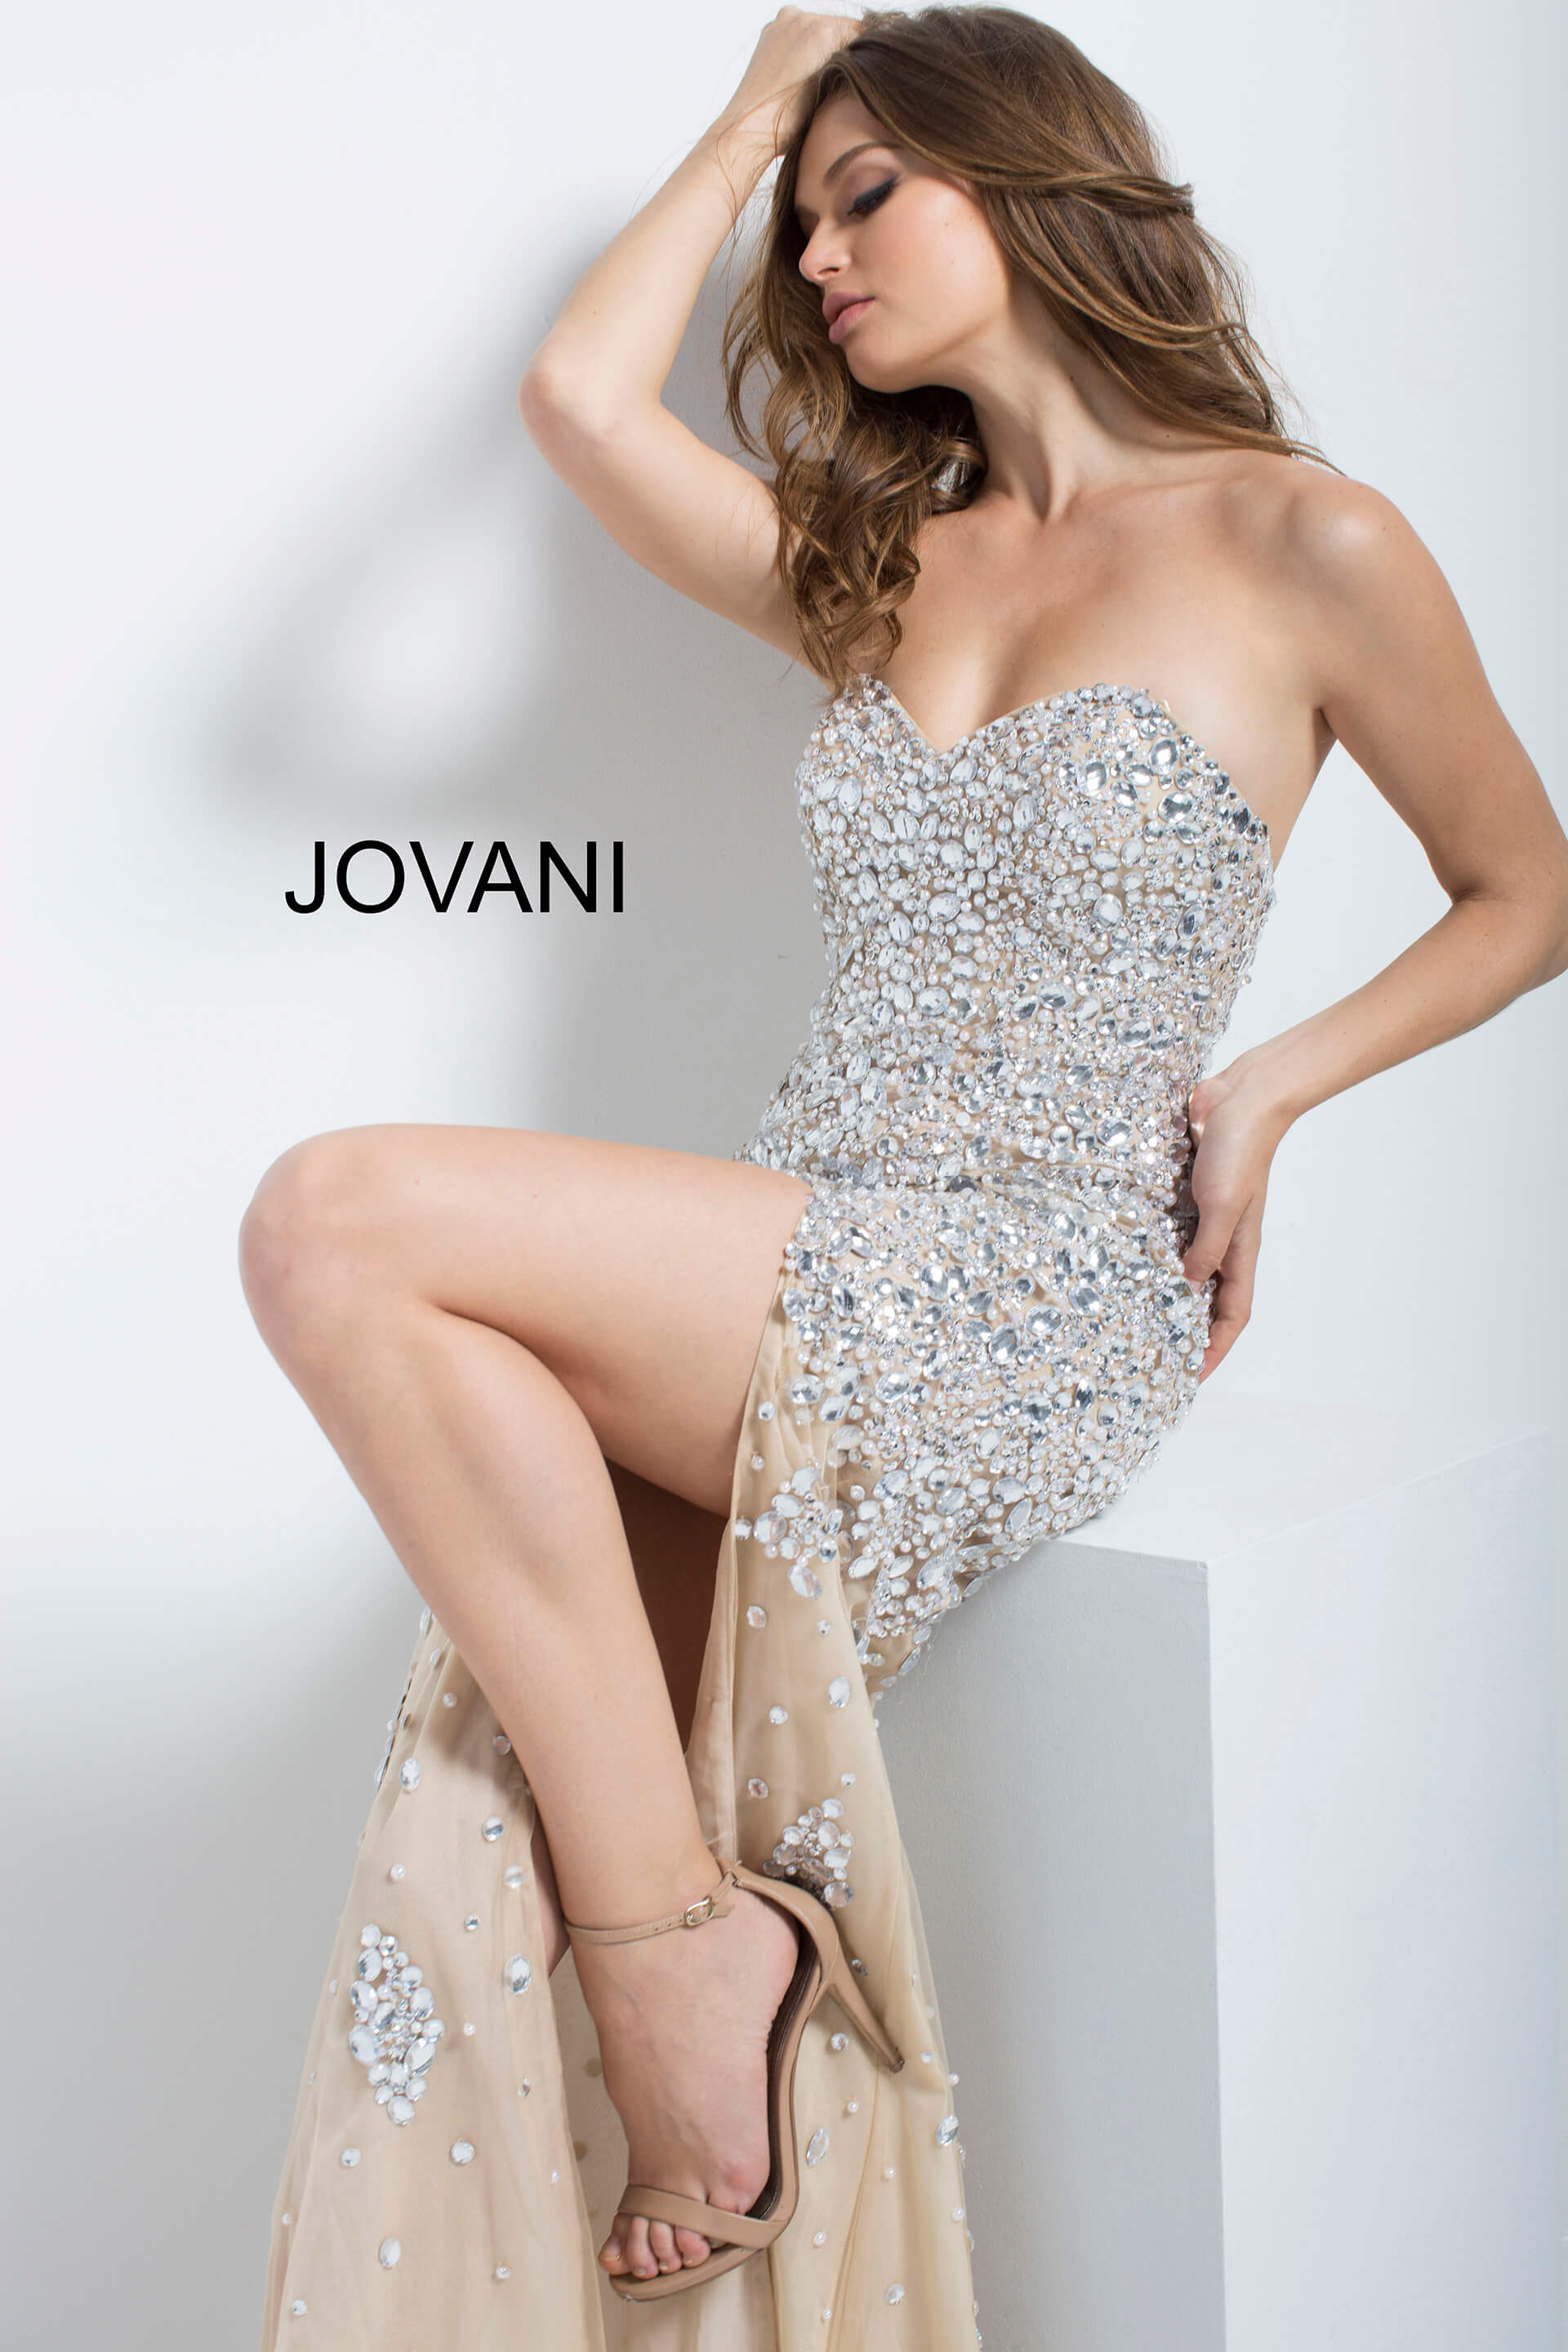 jovani Nude and Silver Embellished Prom Dress 4247 on mobile 13